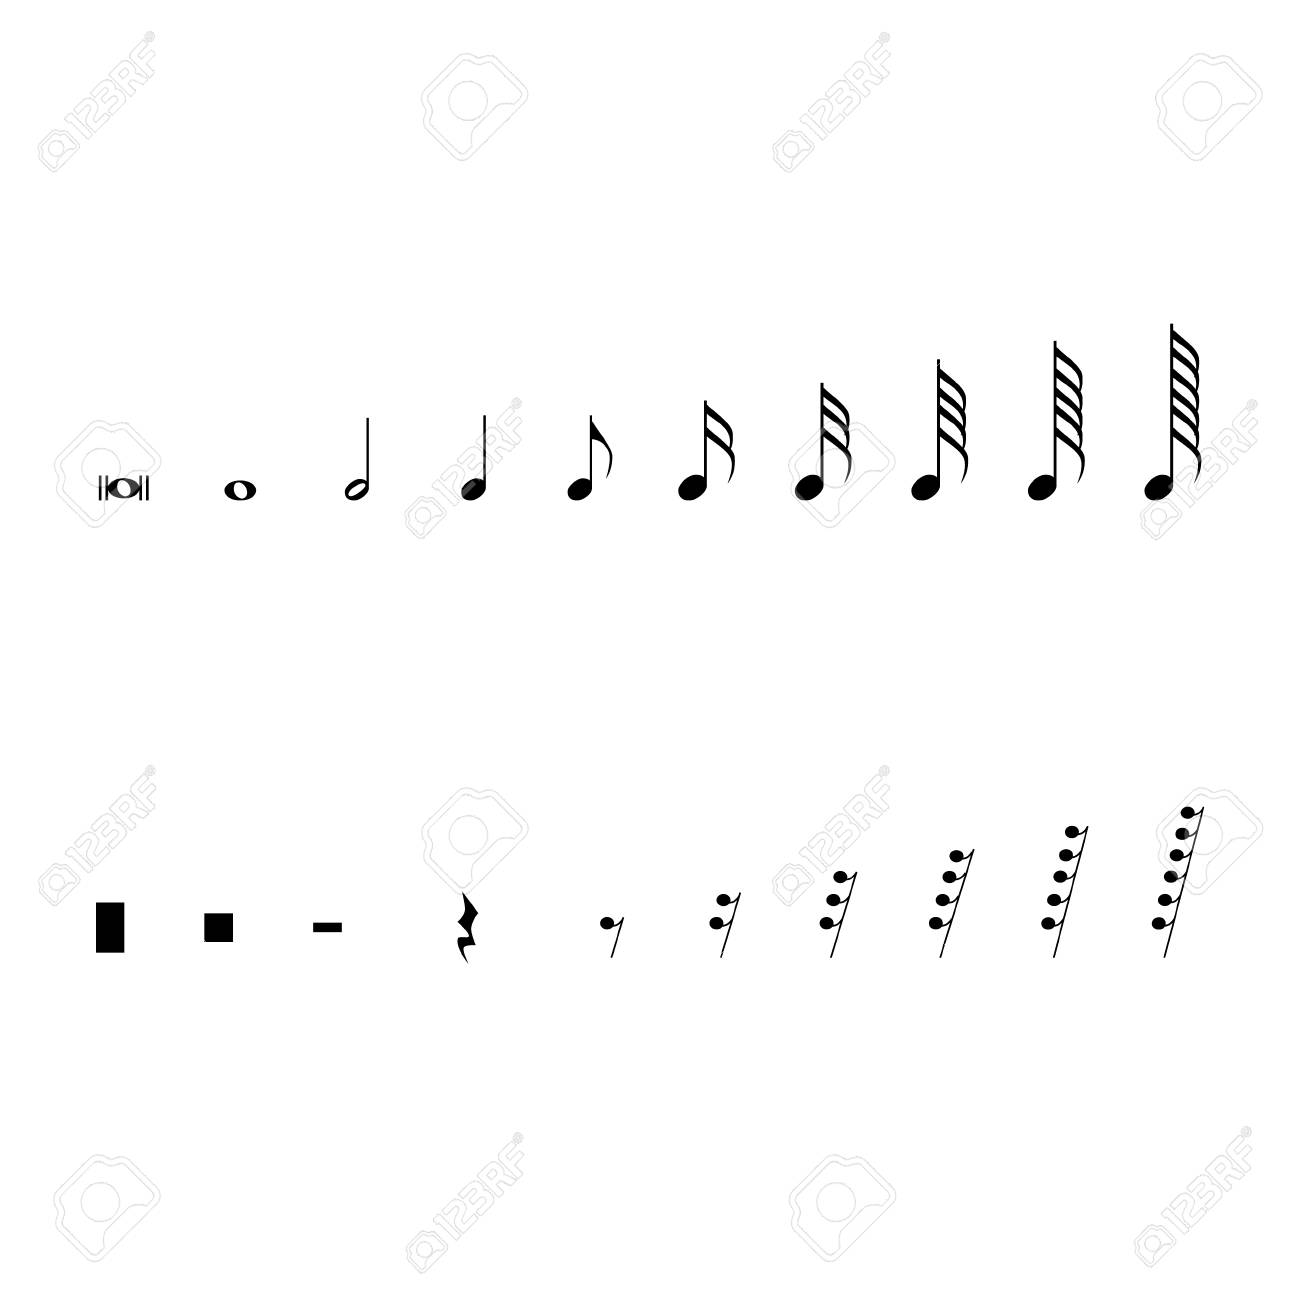 Raster illustration musical notes and pauses black music symbols raster illustration musical notes and pauses black music symbols isolated on white music notation buycottarizona Gallery